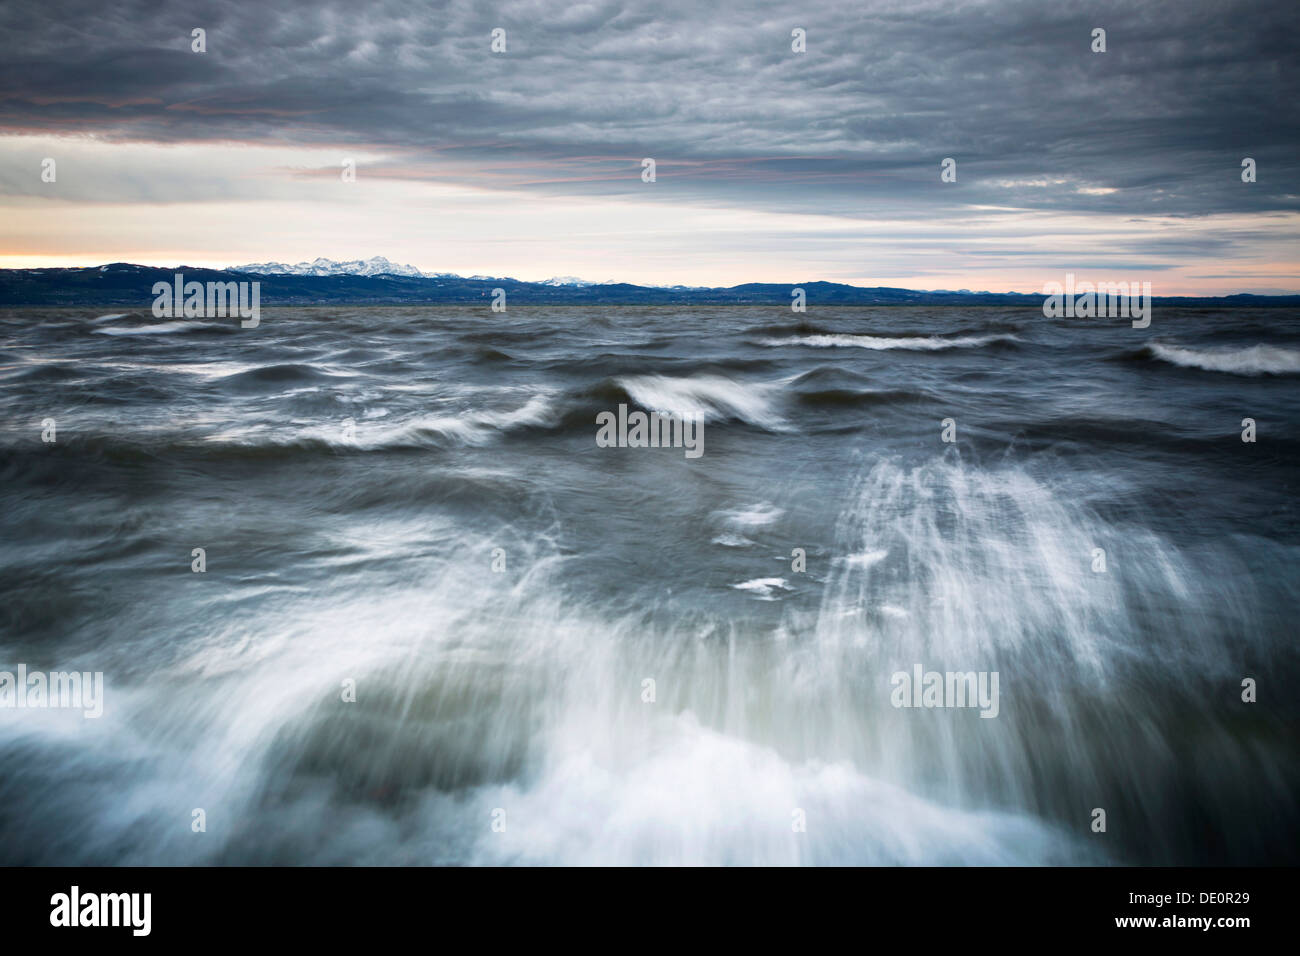 Winter storm on Lake Constance with a view towards the Alps - Stock Image